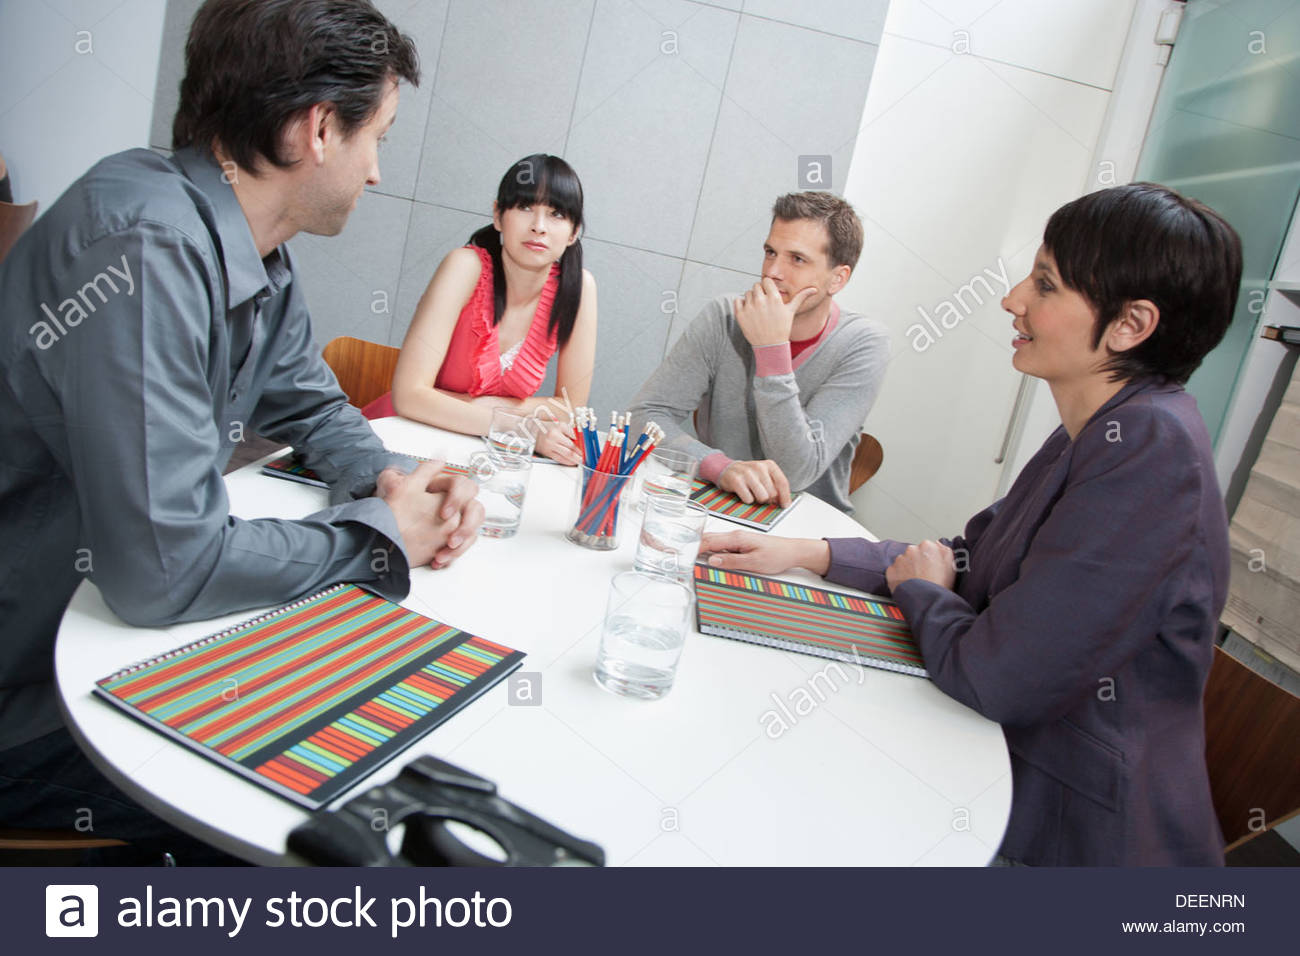 Four businesspeople in an office - Stock Image